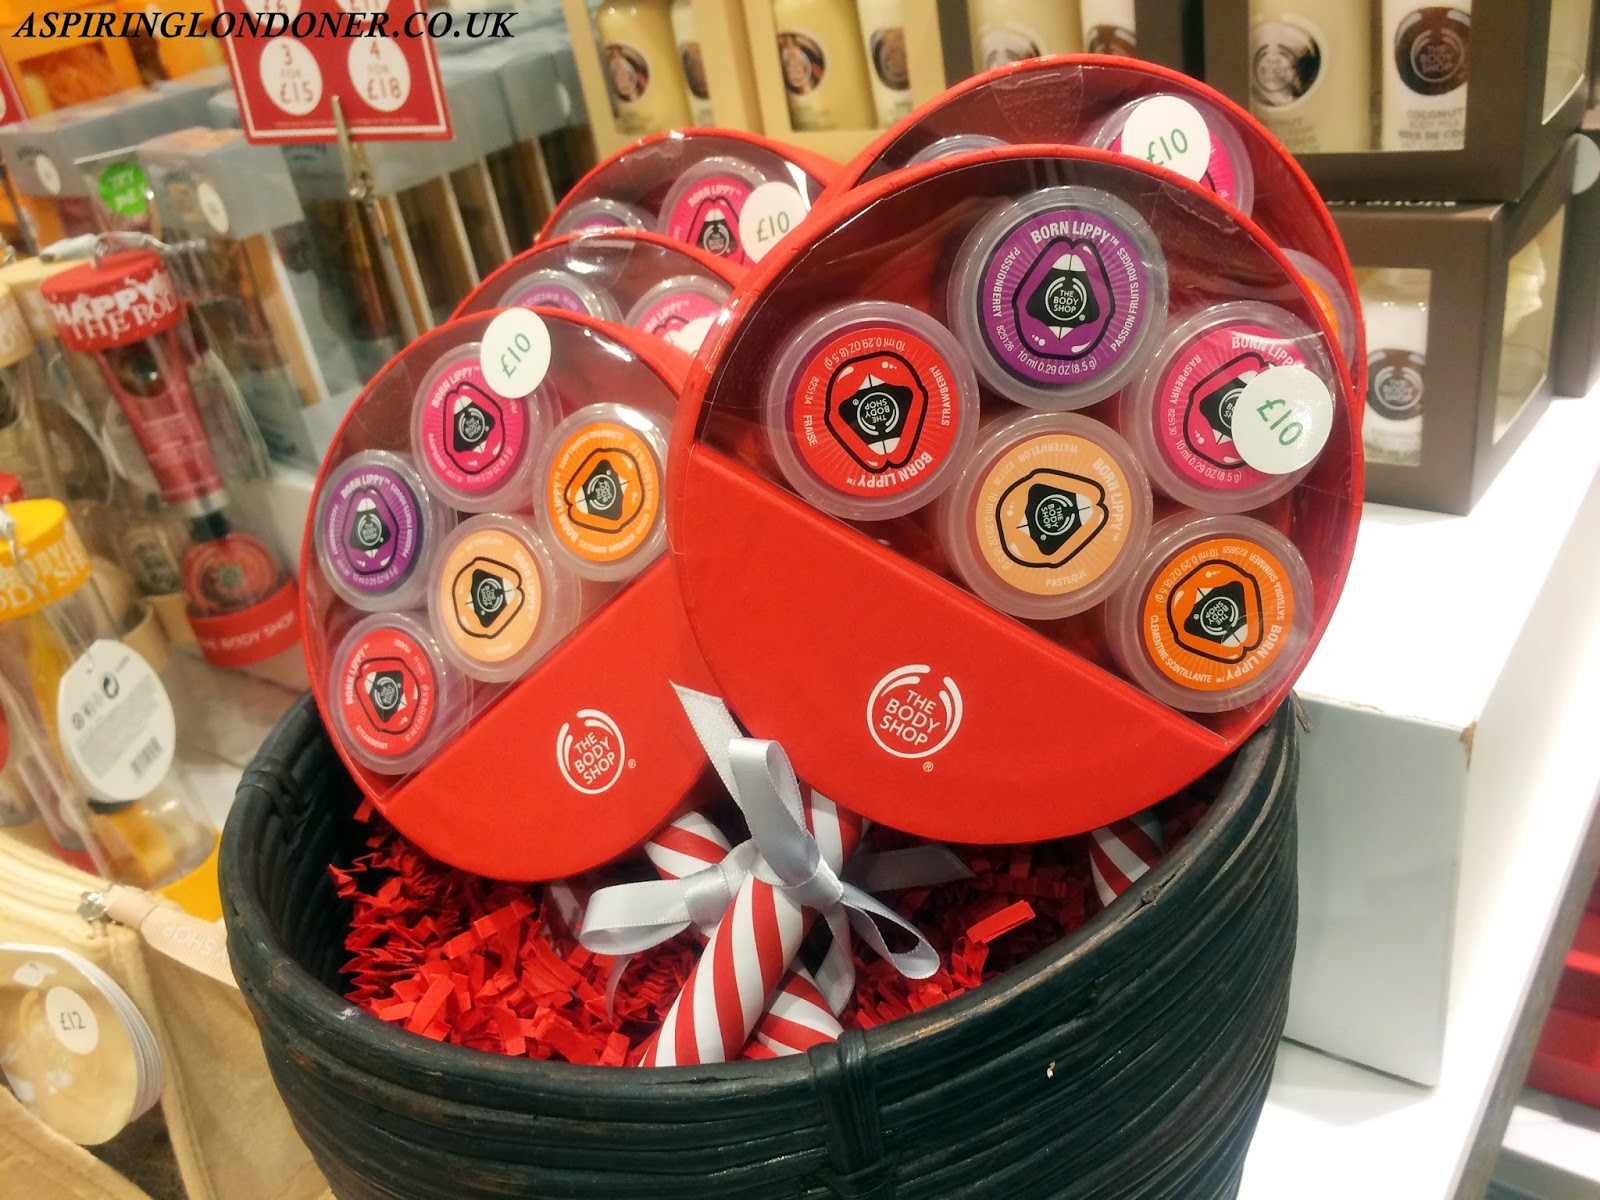 The Body Shop Christmas Gift Sets - Aspiring Londoner